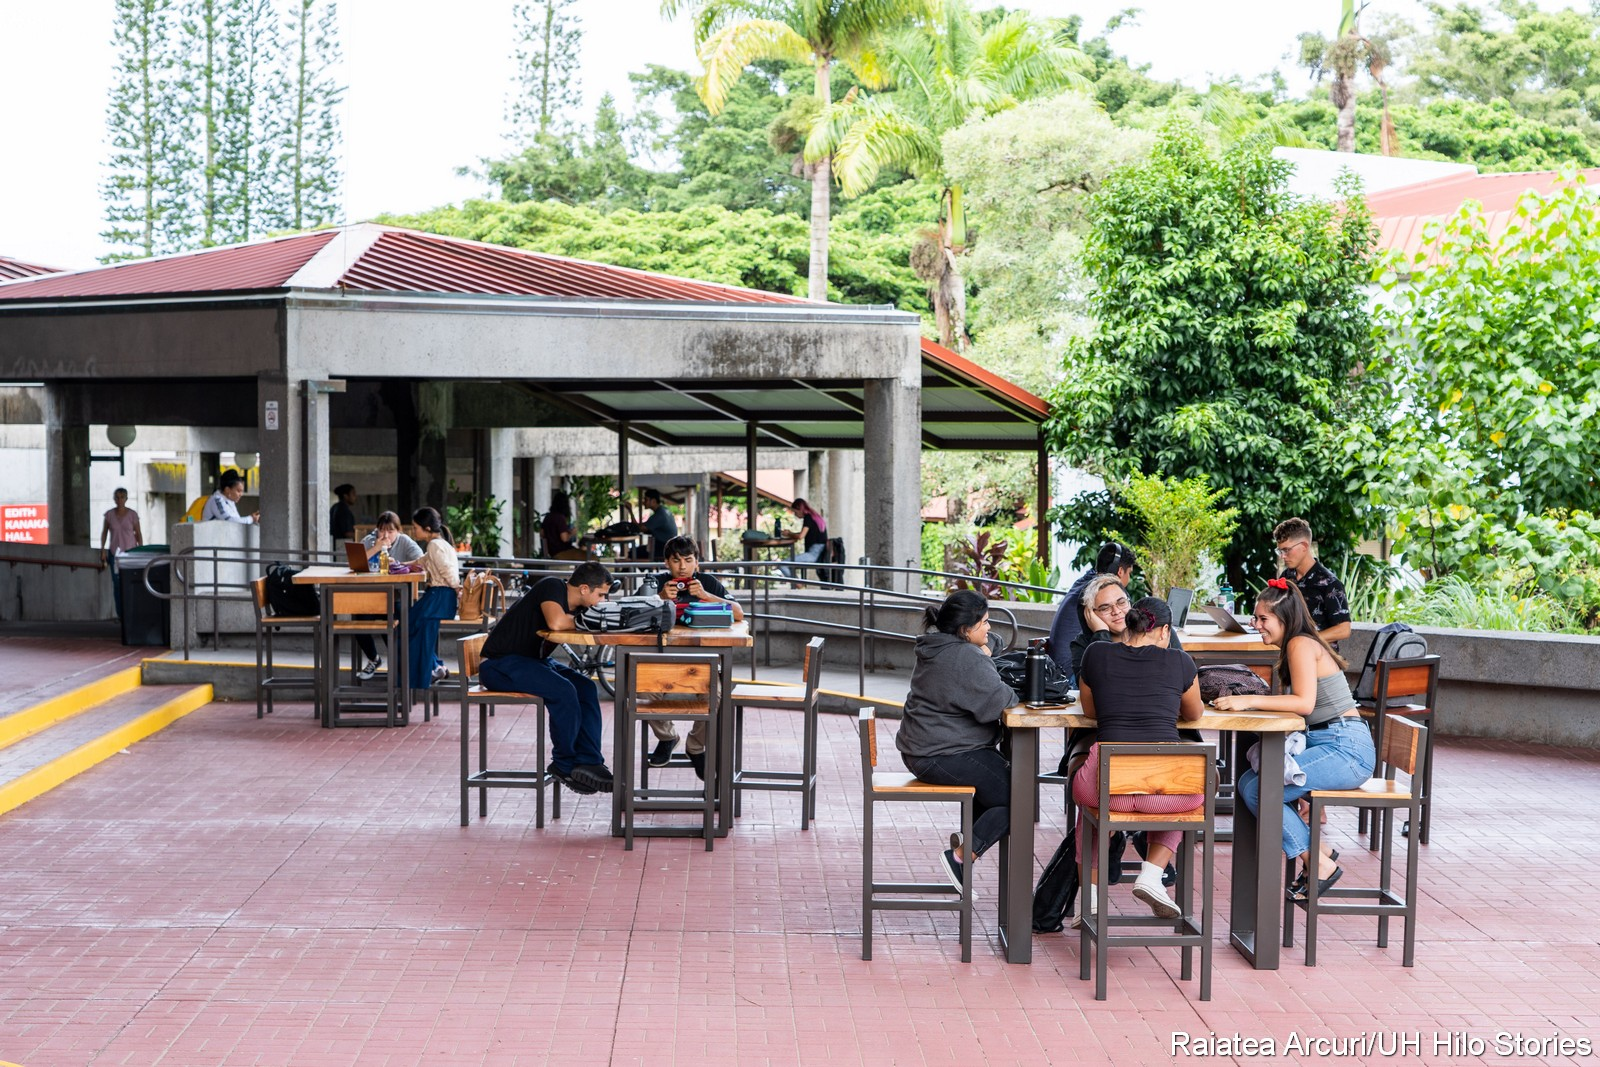 Students at tables on open lanai, greenery and trees in background.